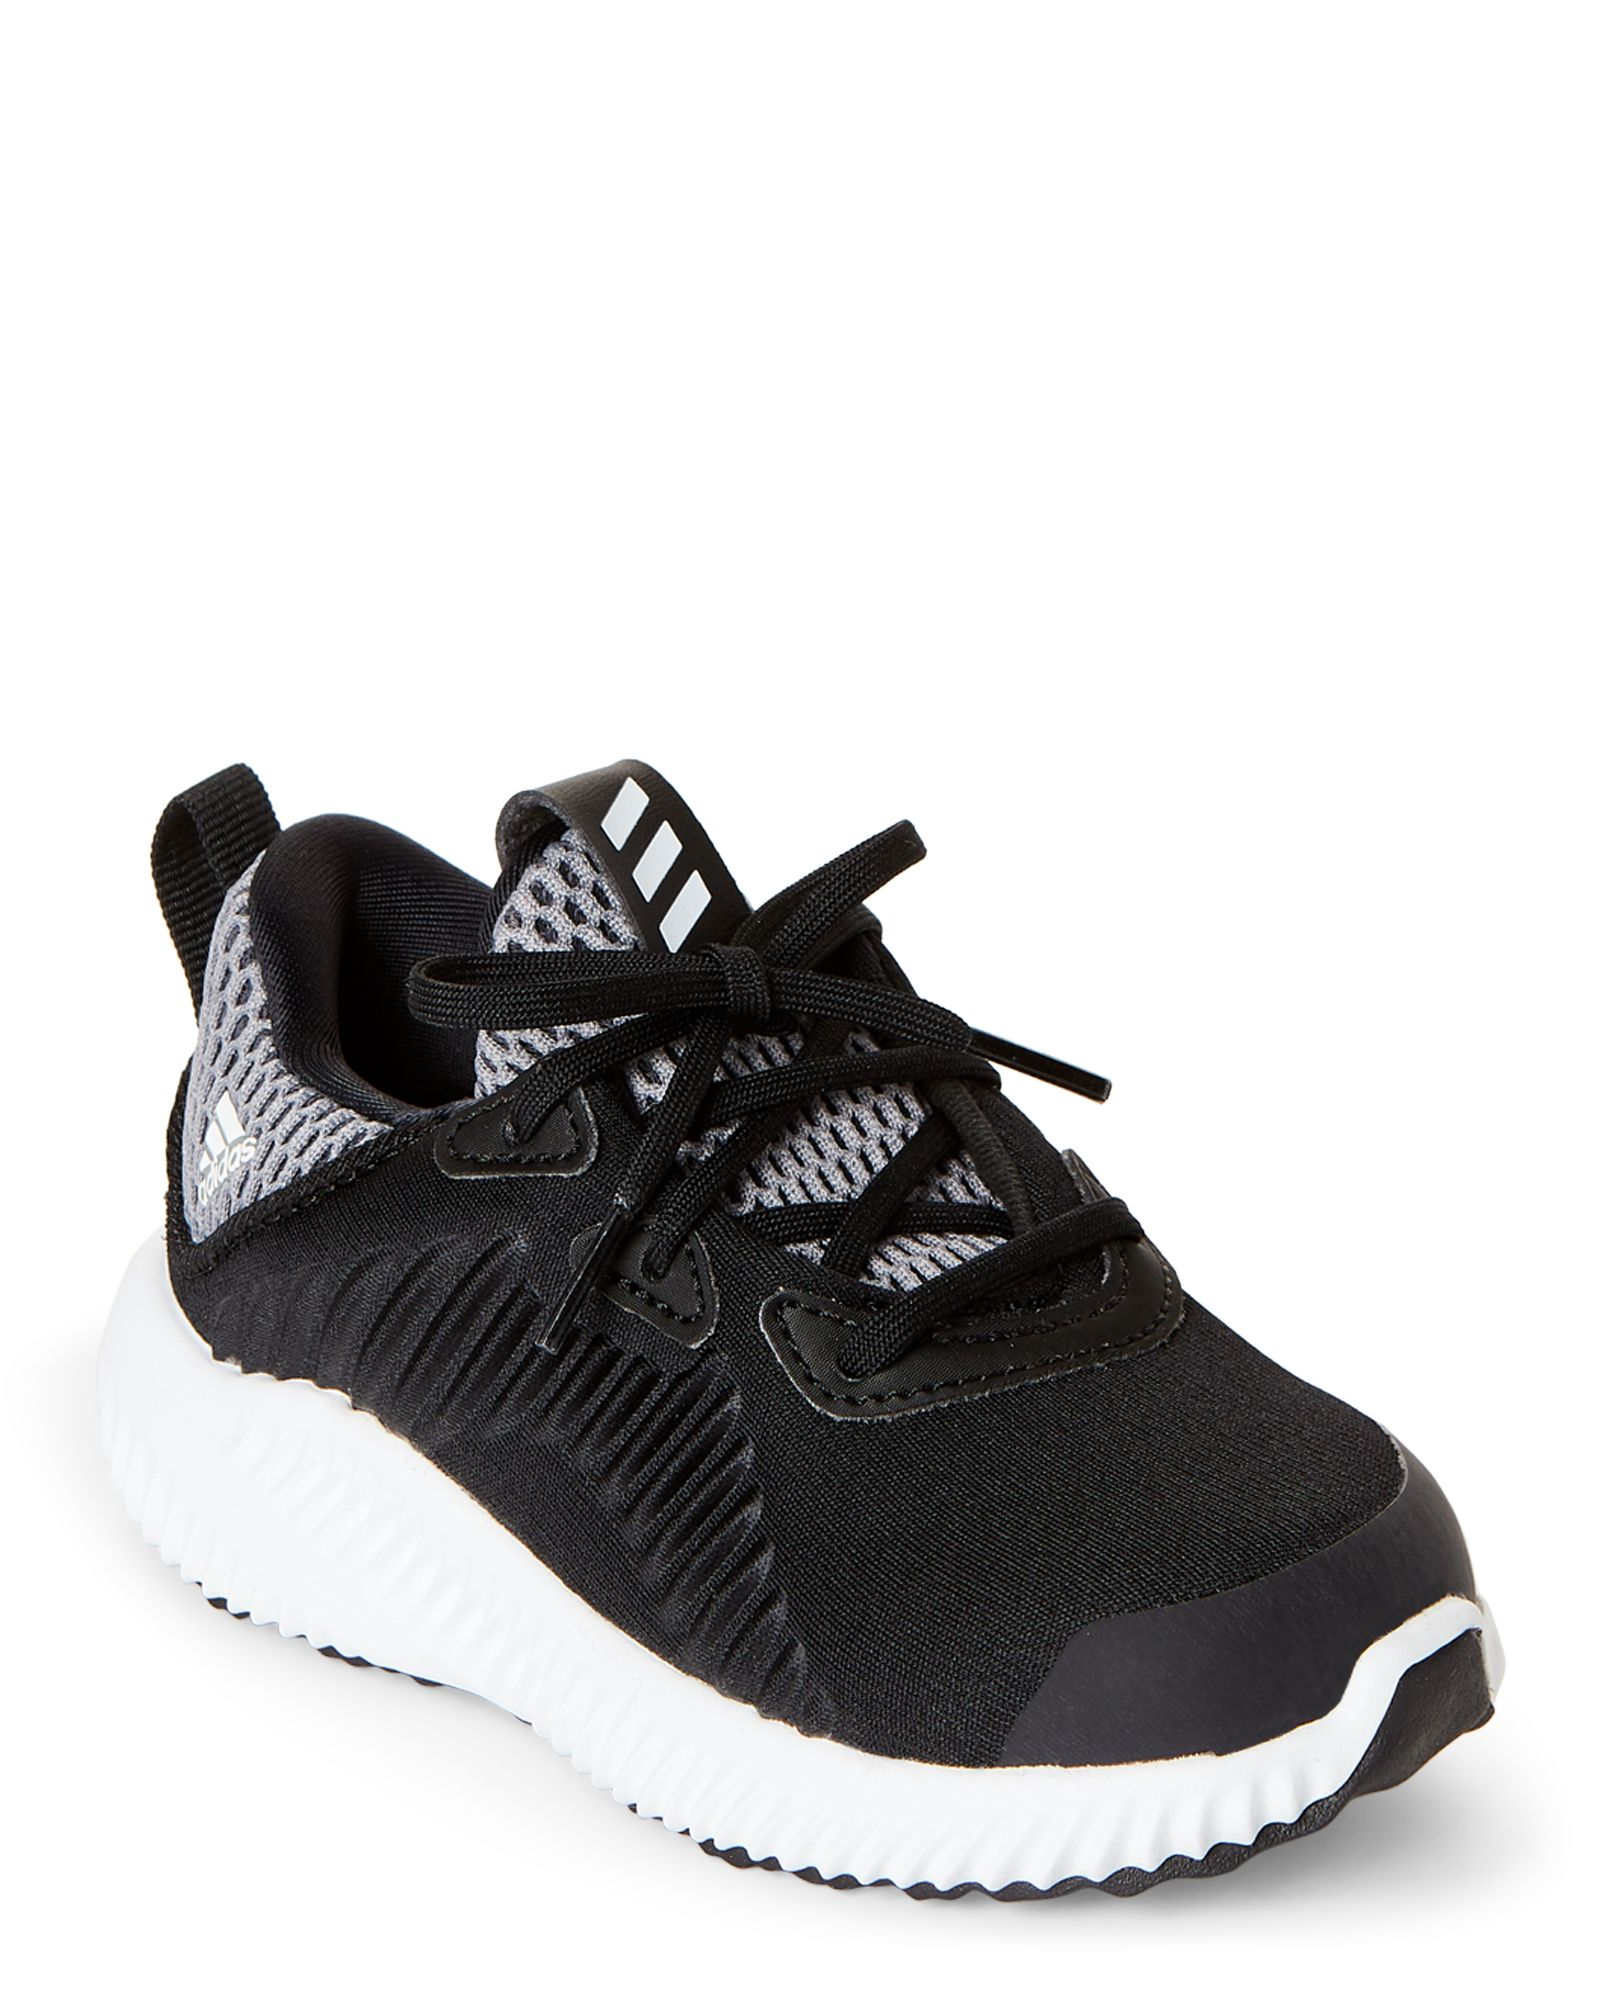 90df9a78b Adidas (Infant Toddler Boys) Black   Onyx Alphabounce Sneakers